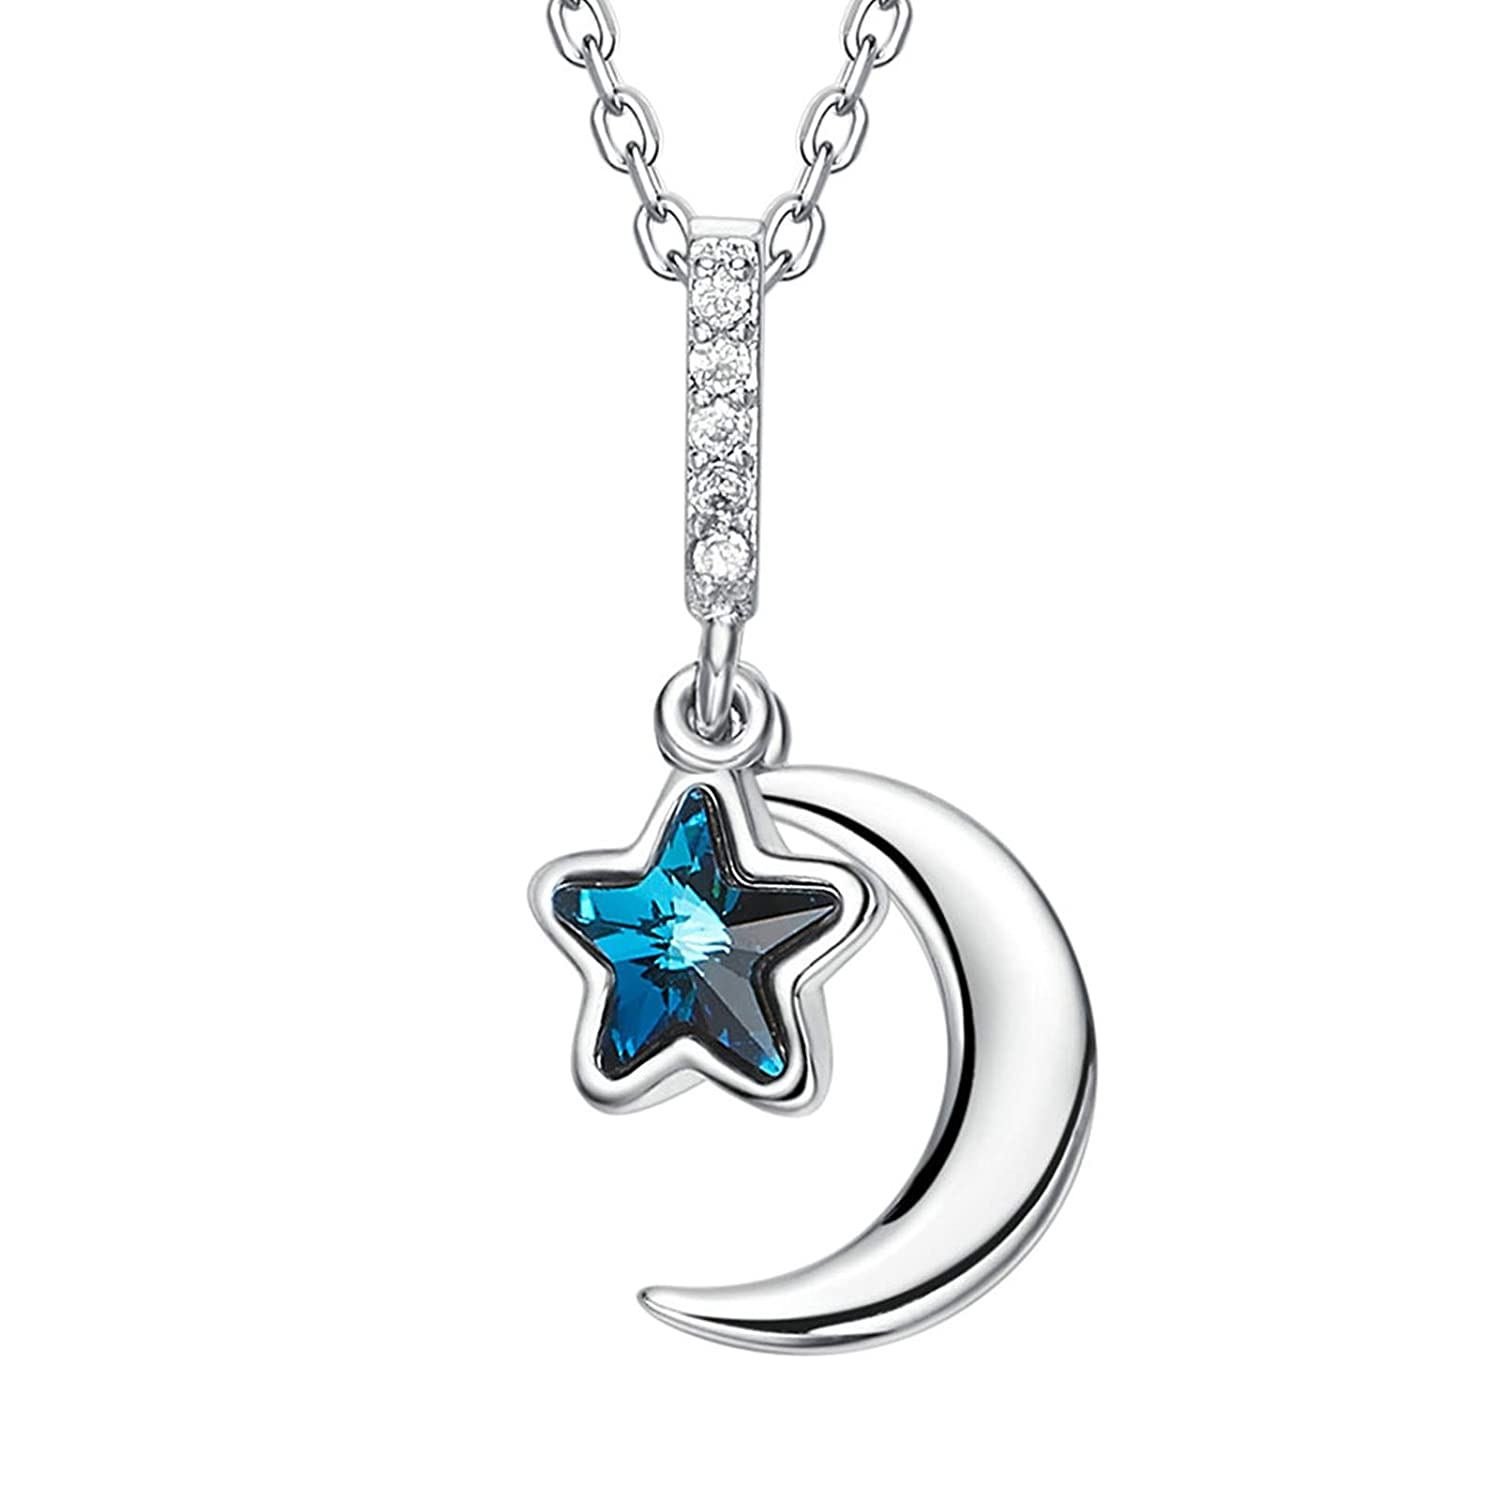 ANAZOZ I Love You to The Moon and Back Crytal Star Crescent Pendant Necklace